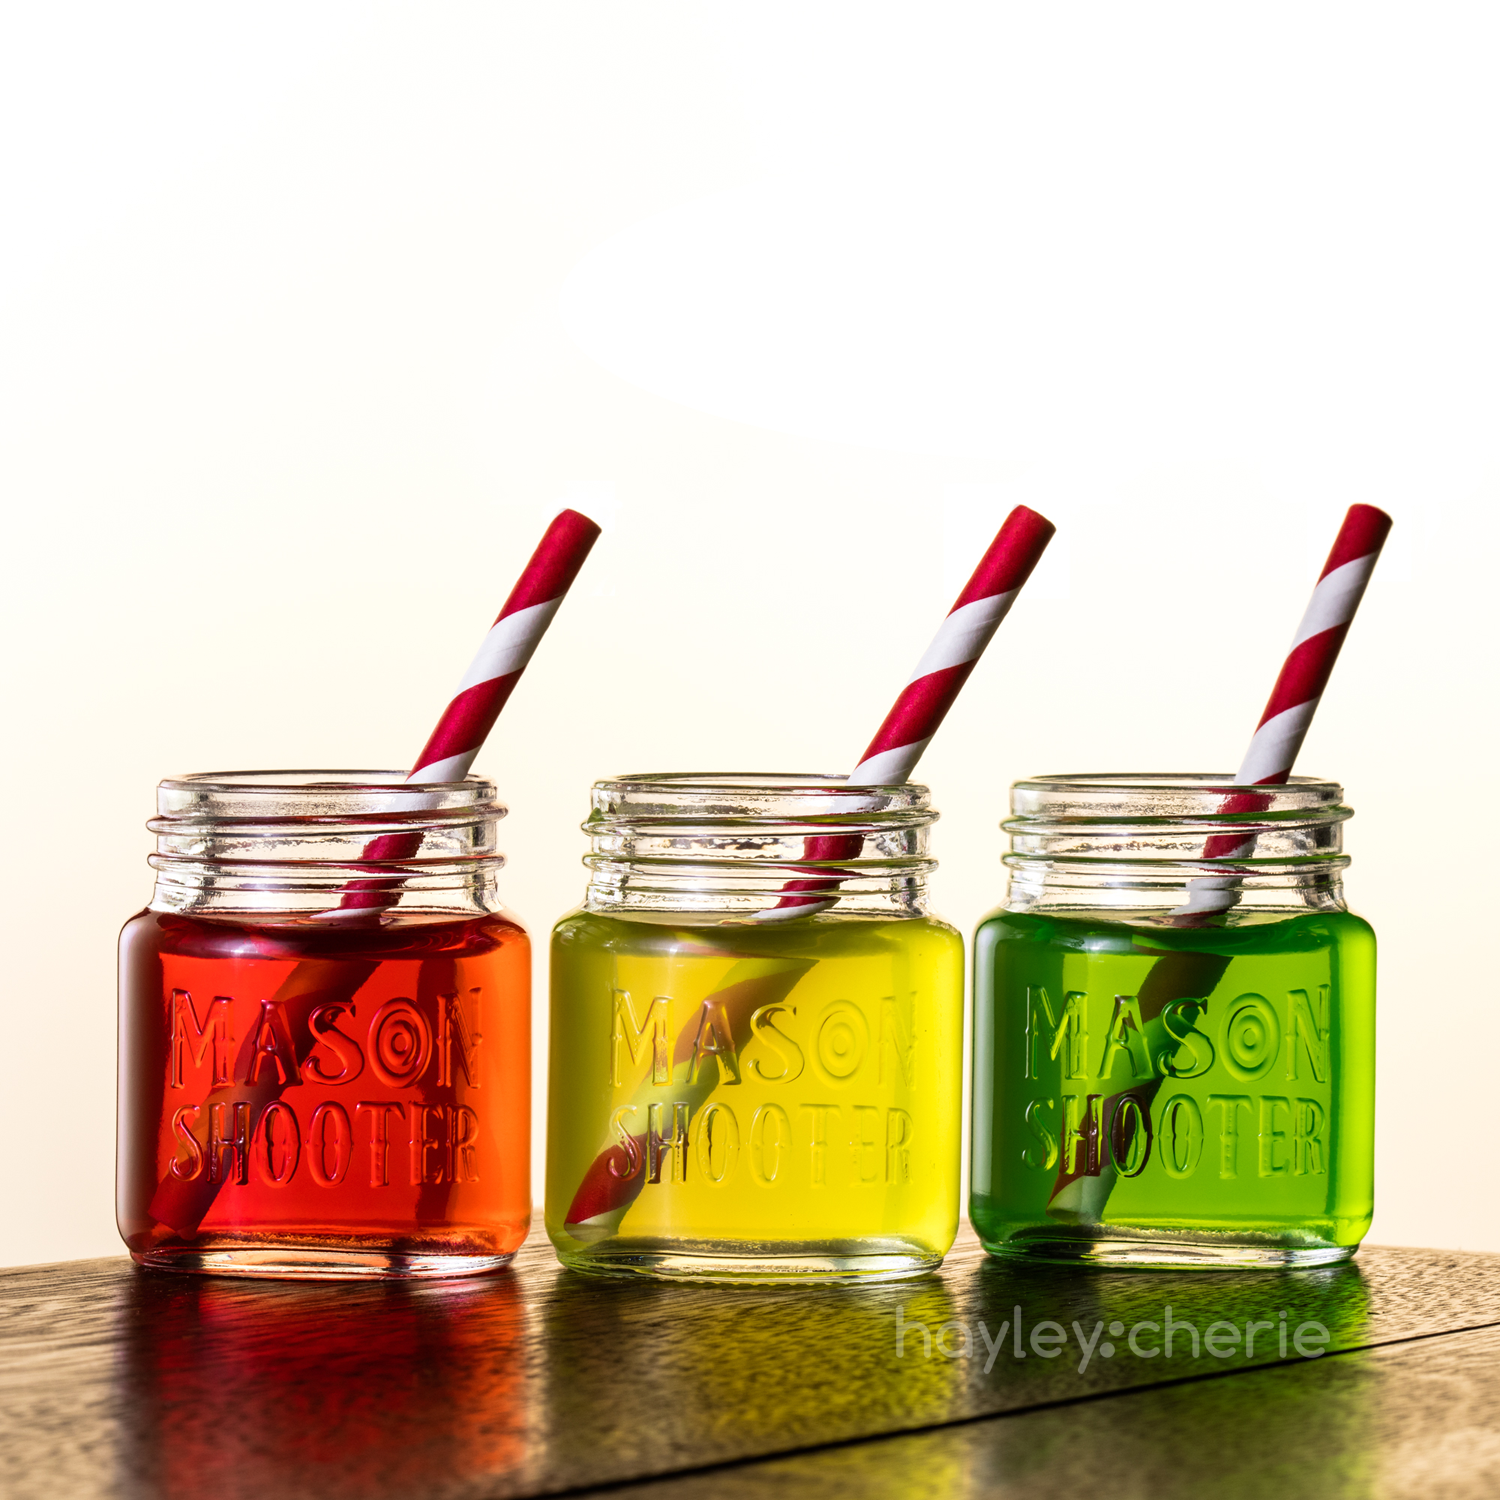 Mason Shooter – Mason Jar Shot Glasses – hayley cherie